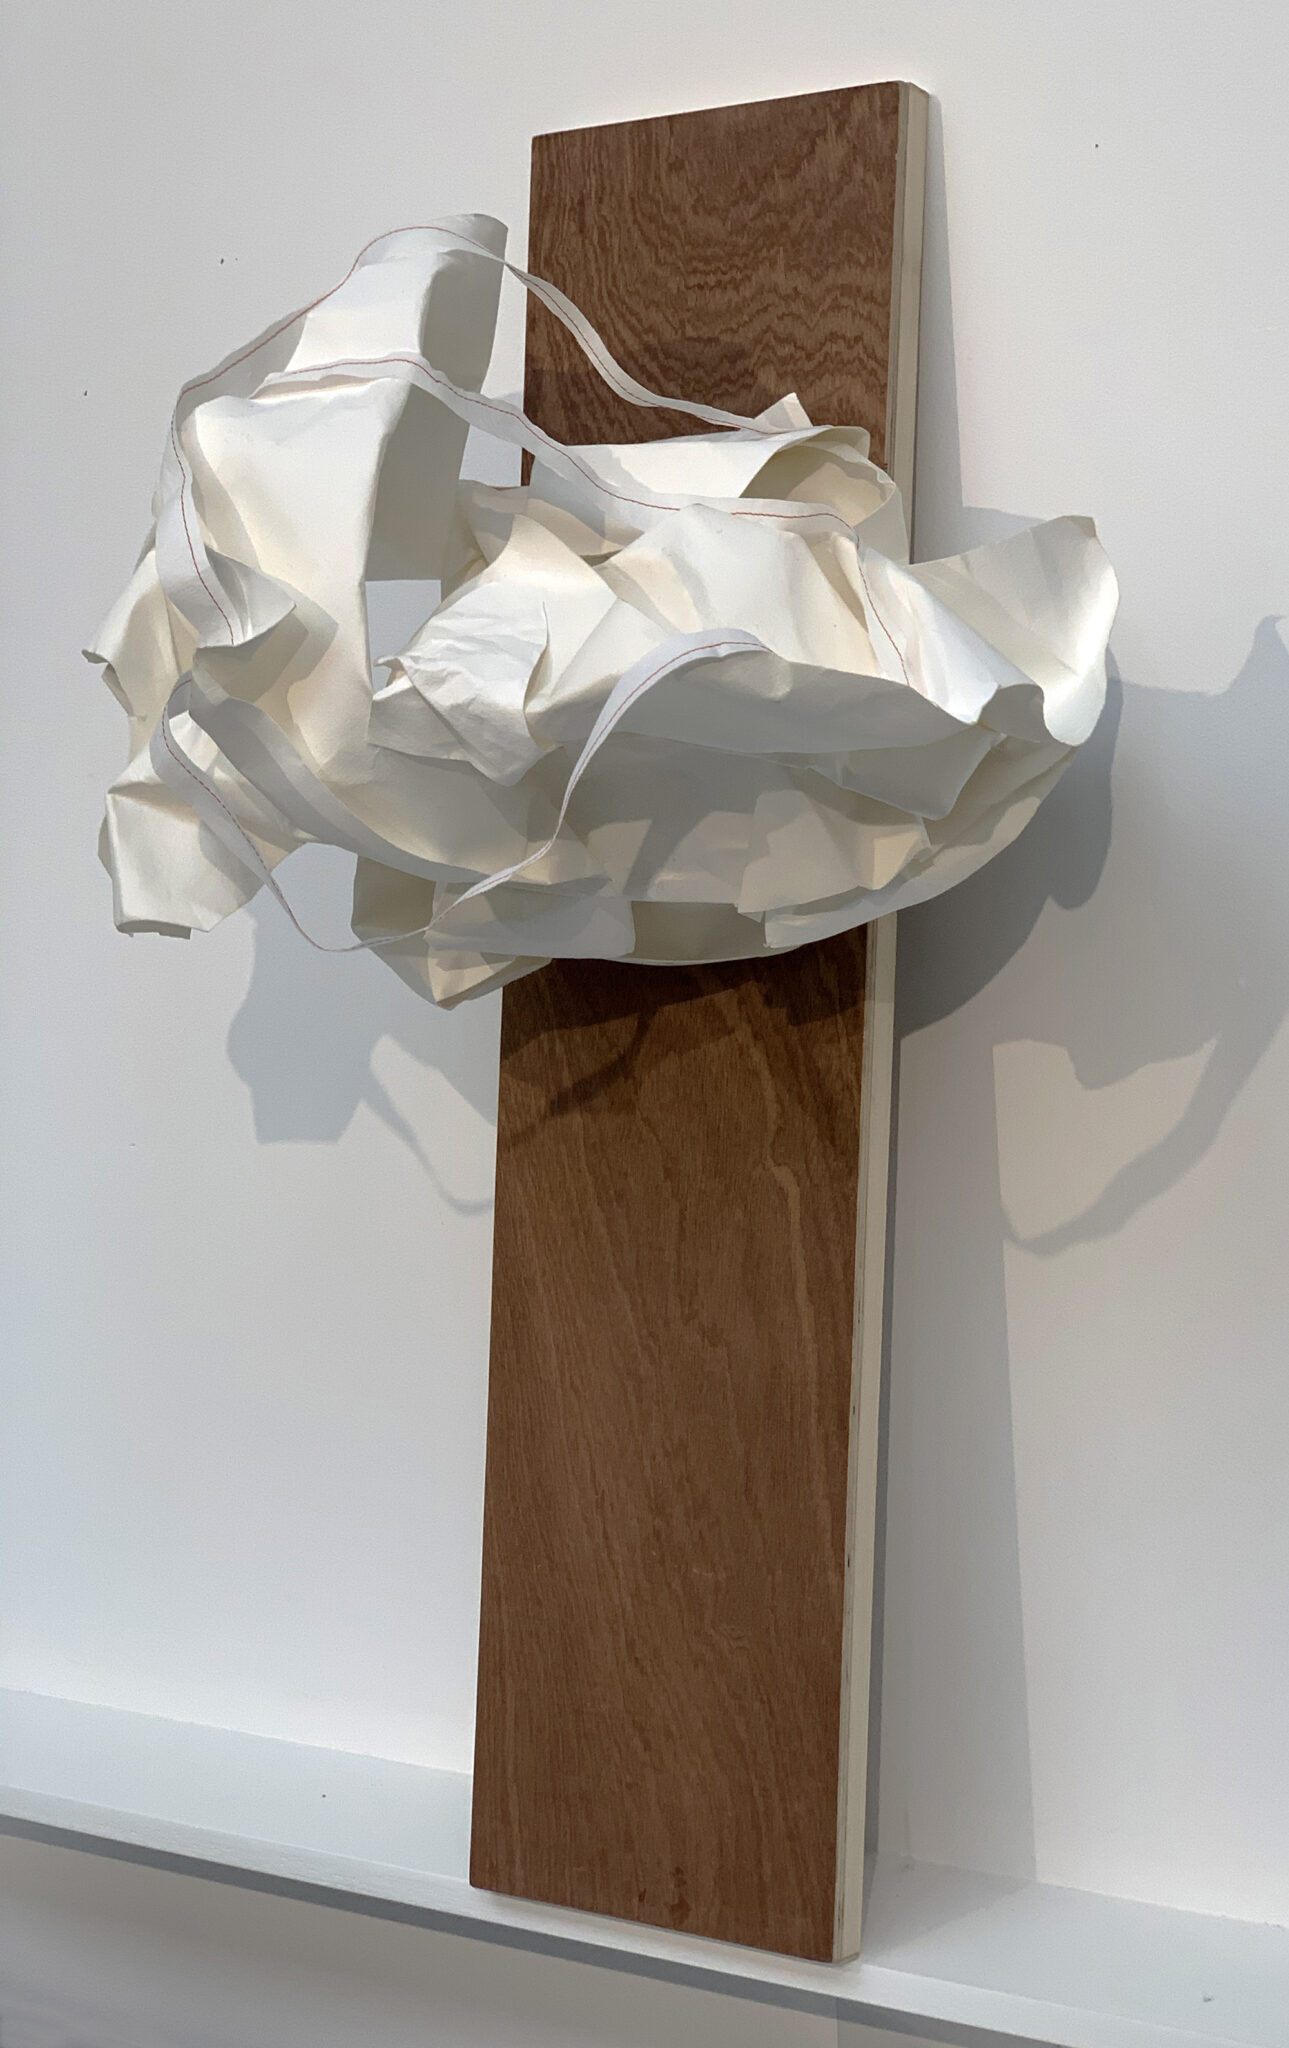 142<>She is in it<>Paper sculpture<>27x40x27 cm on wooden panel  20x83x2,7 cm